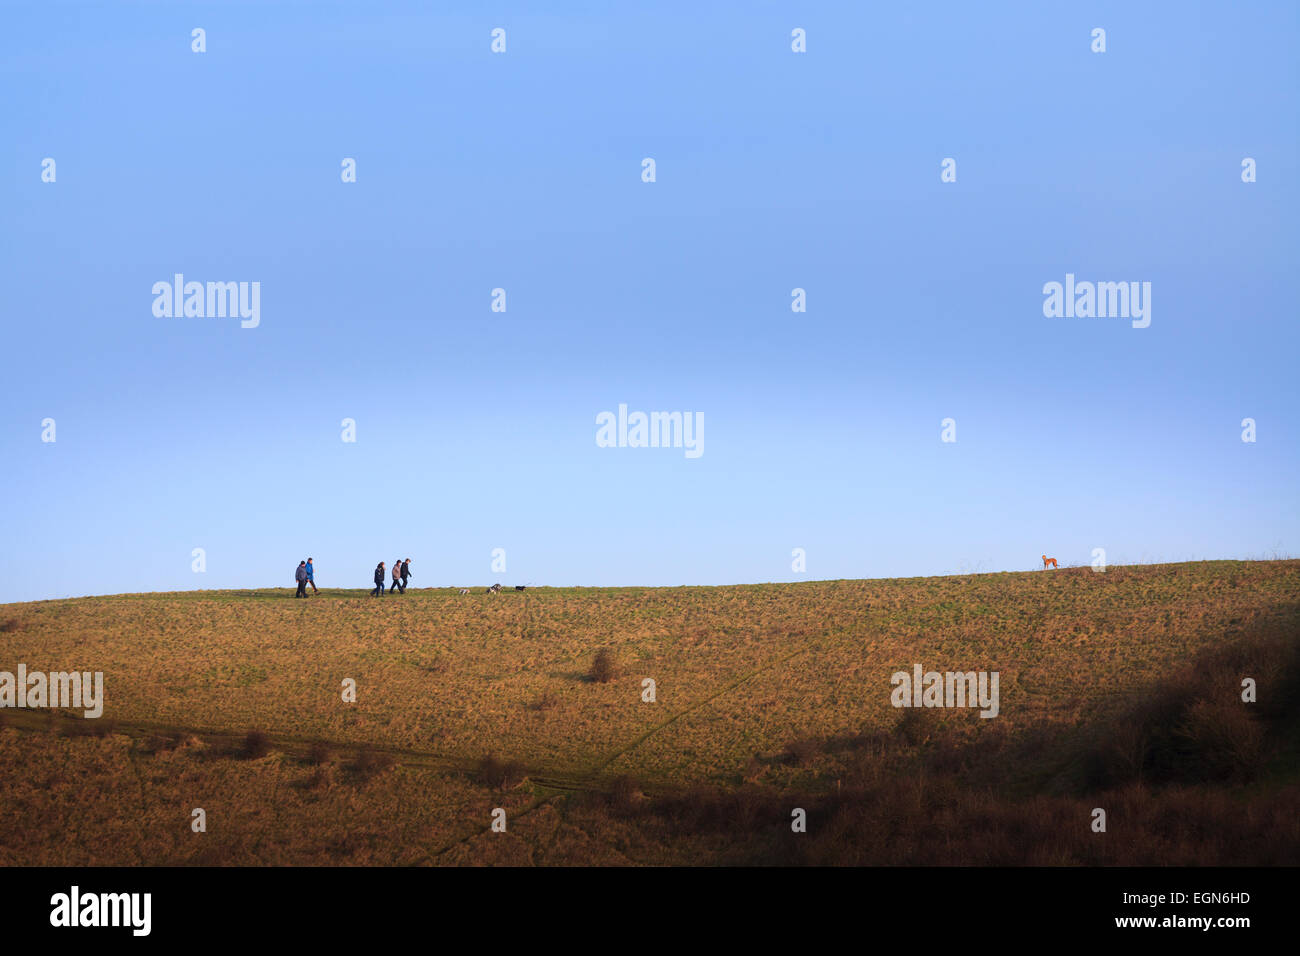 Group of walkers and dog on ridge of hill against blue sky in distance Stock Photo